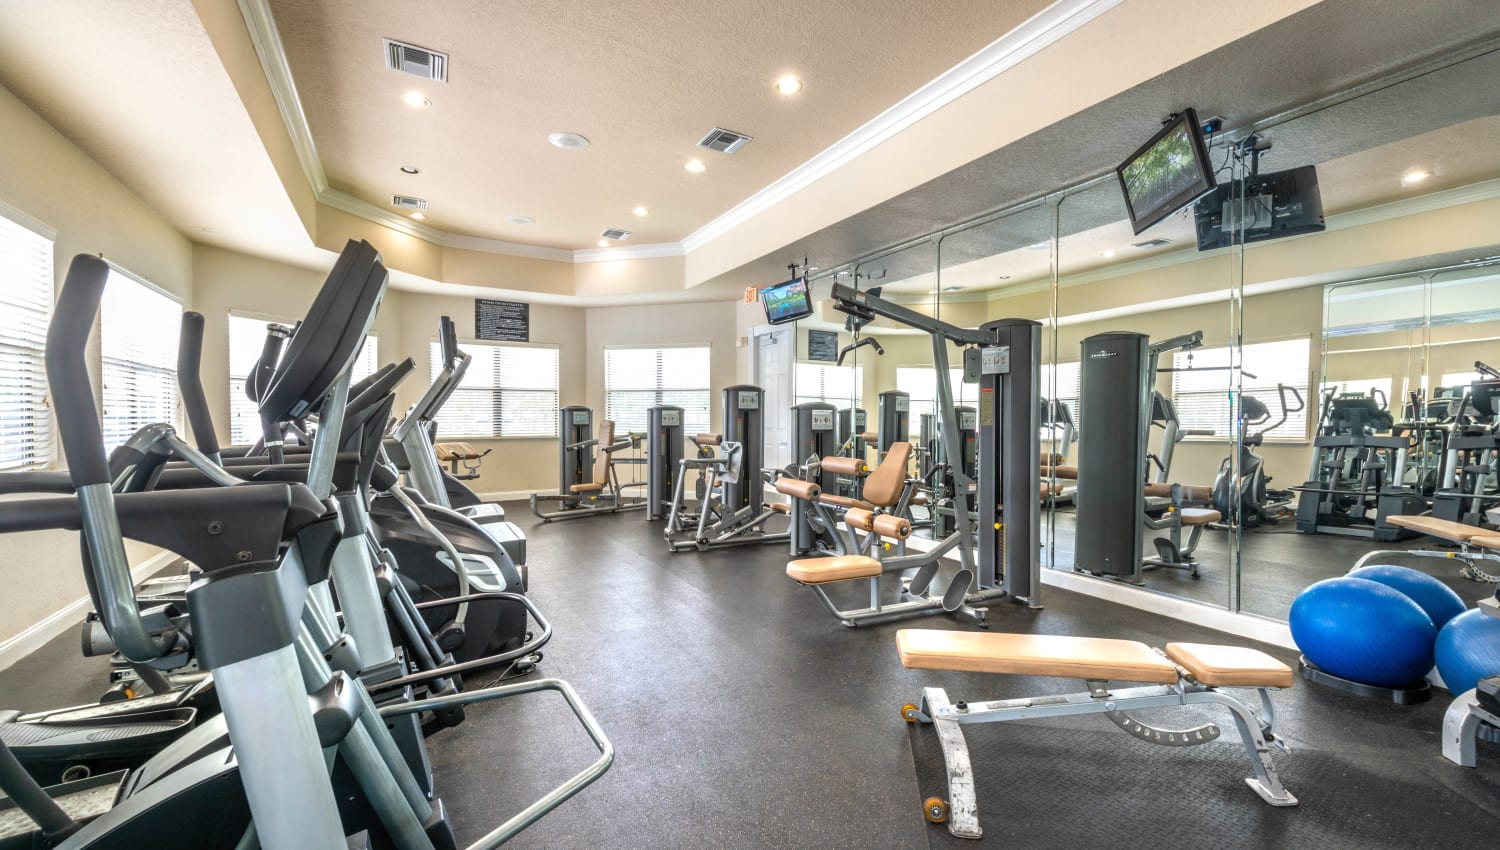 Very well-equipped fitness center at Mirador & Stovall at River City in Jacksonville, Florida